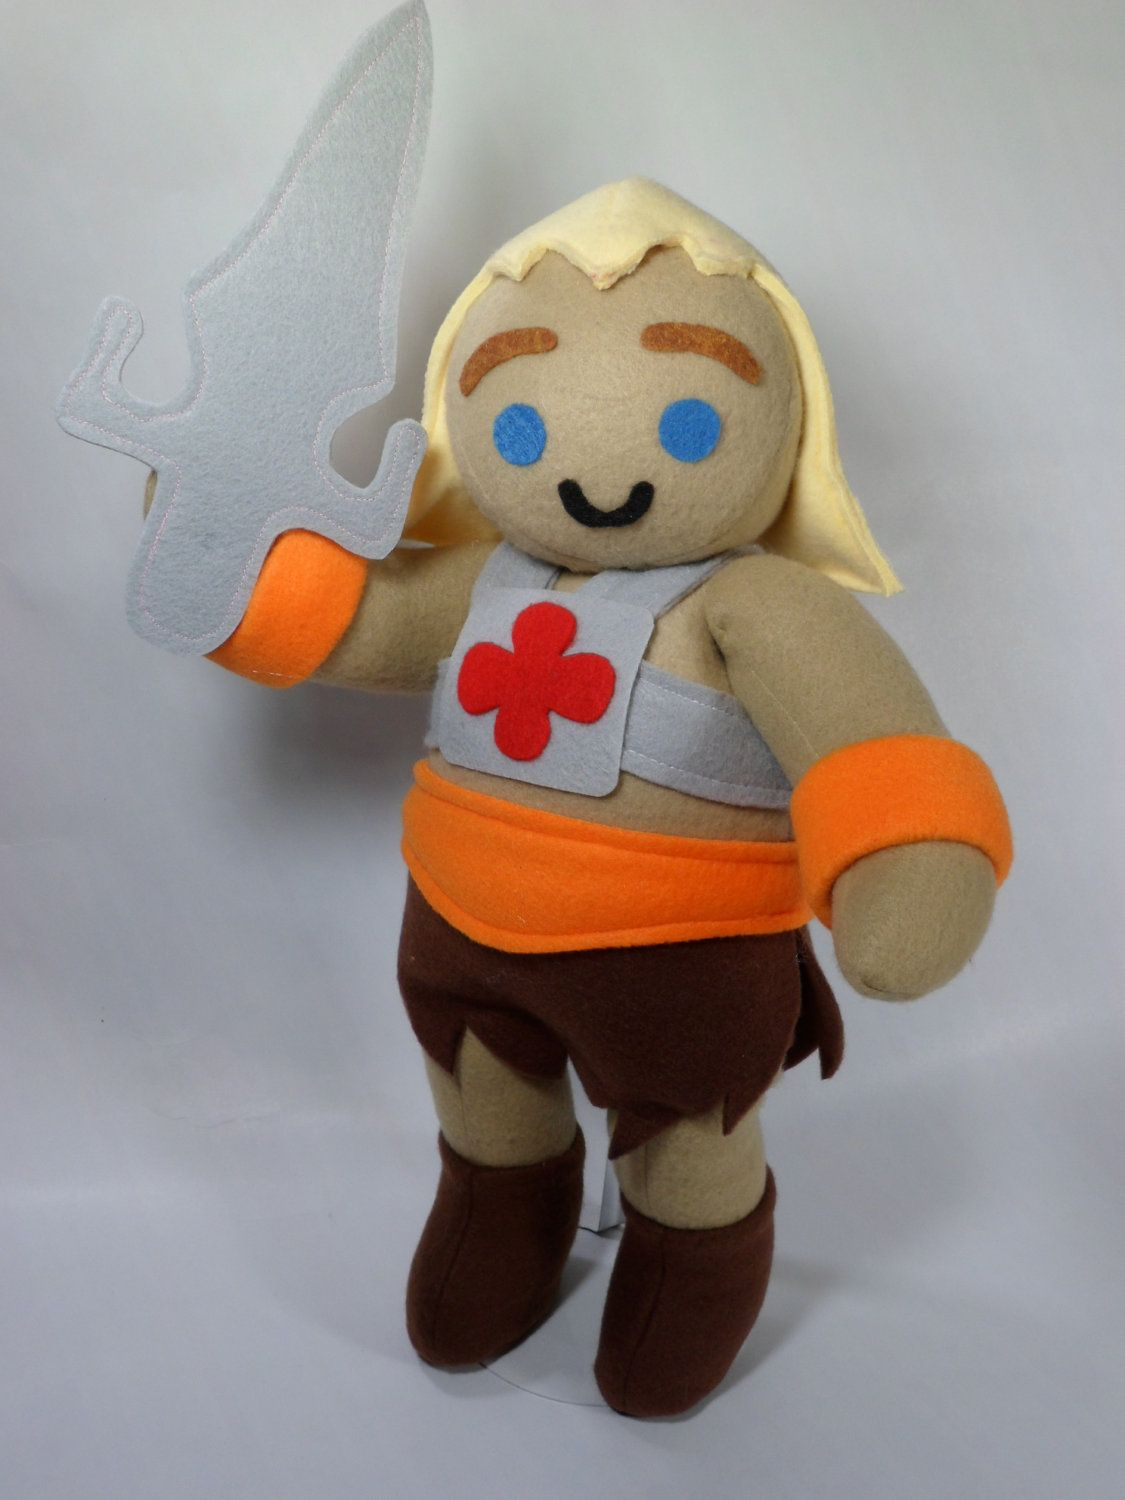 He-Man Masters of the Universe Cuddly Plush Toy   He-men   Pinterest